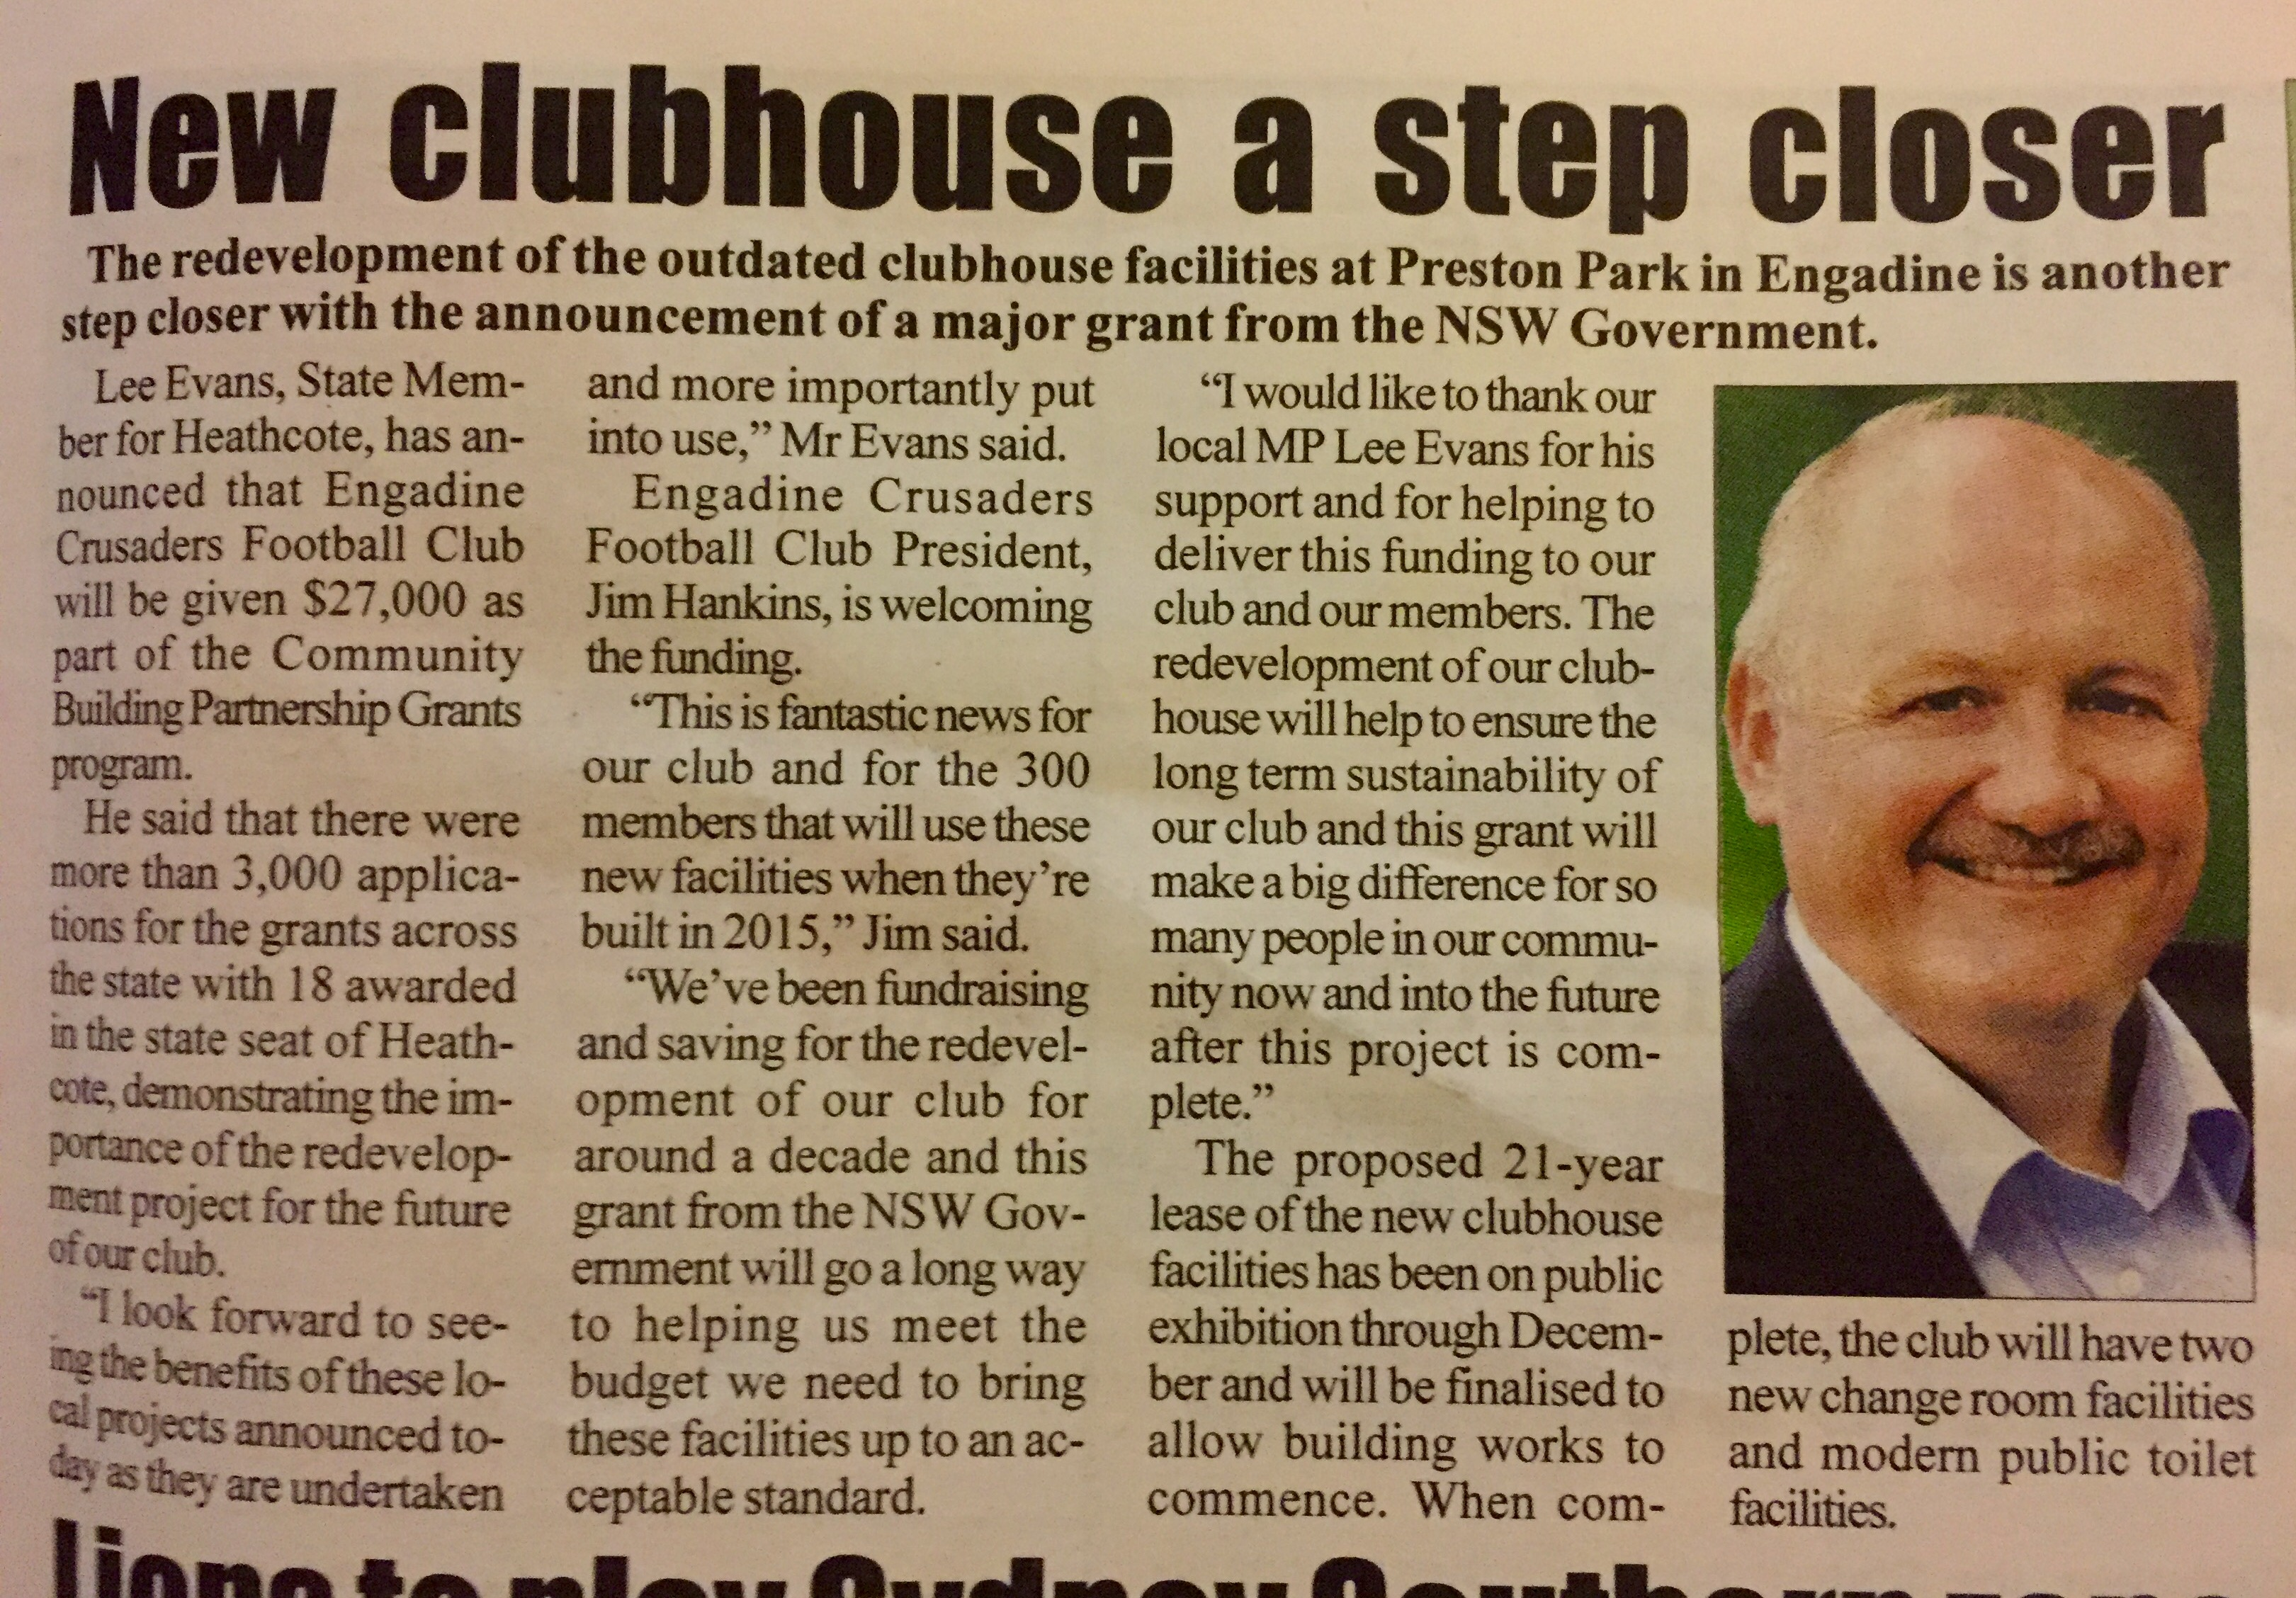 Pictorial News - New clubhouse a step closer 150119